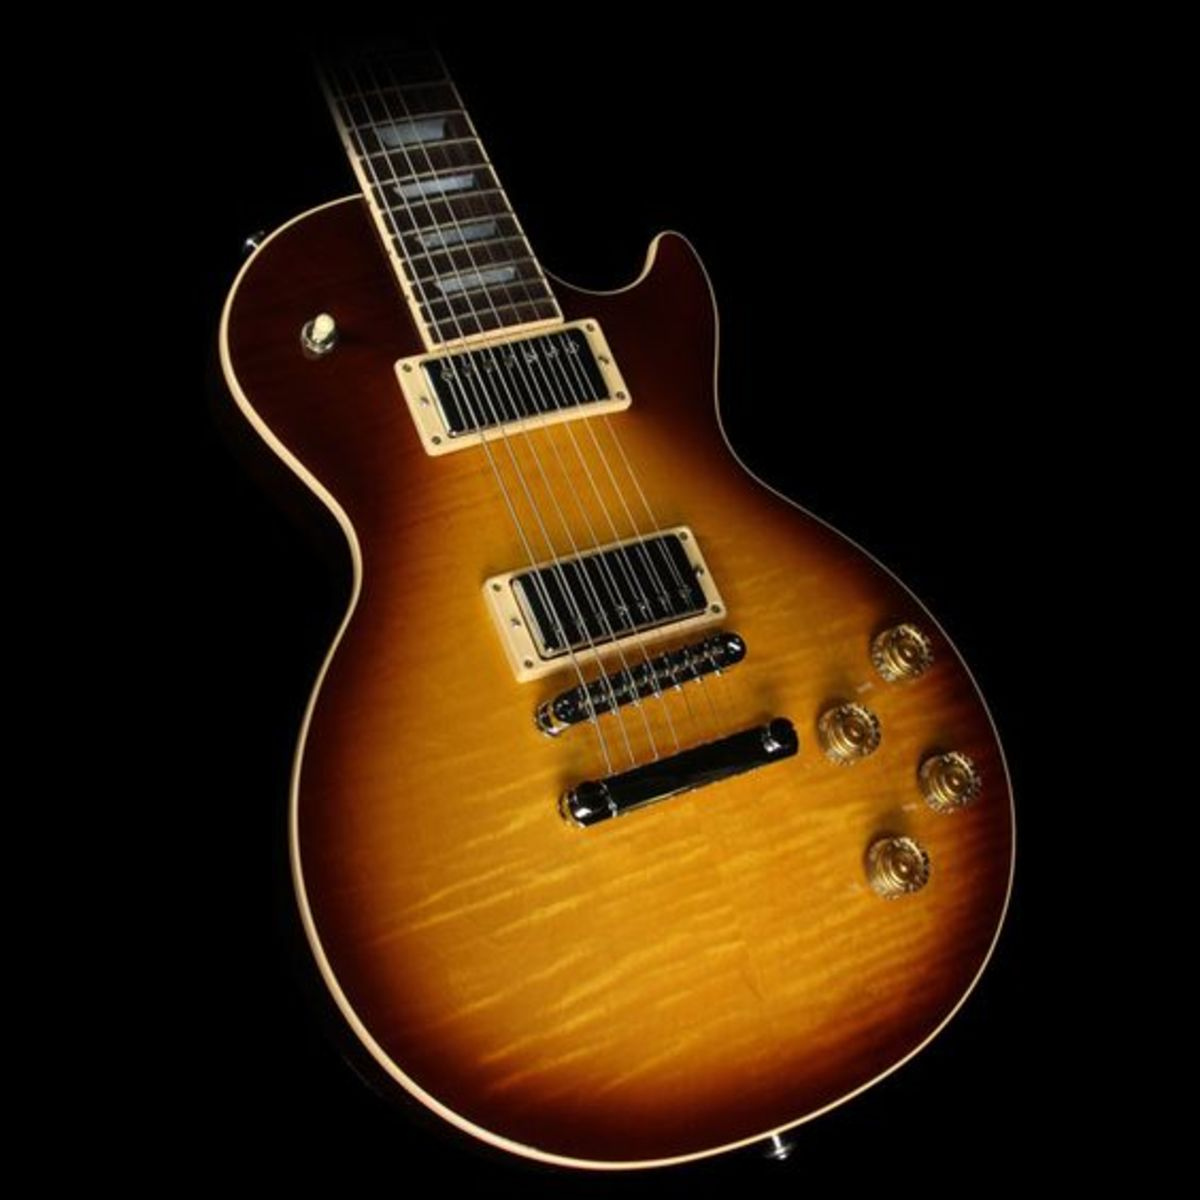 2016 Gibson Les Paul Standard 7-String Limited Edition Electric Guitar Tobacco Sunburst